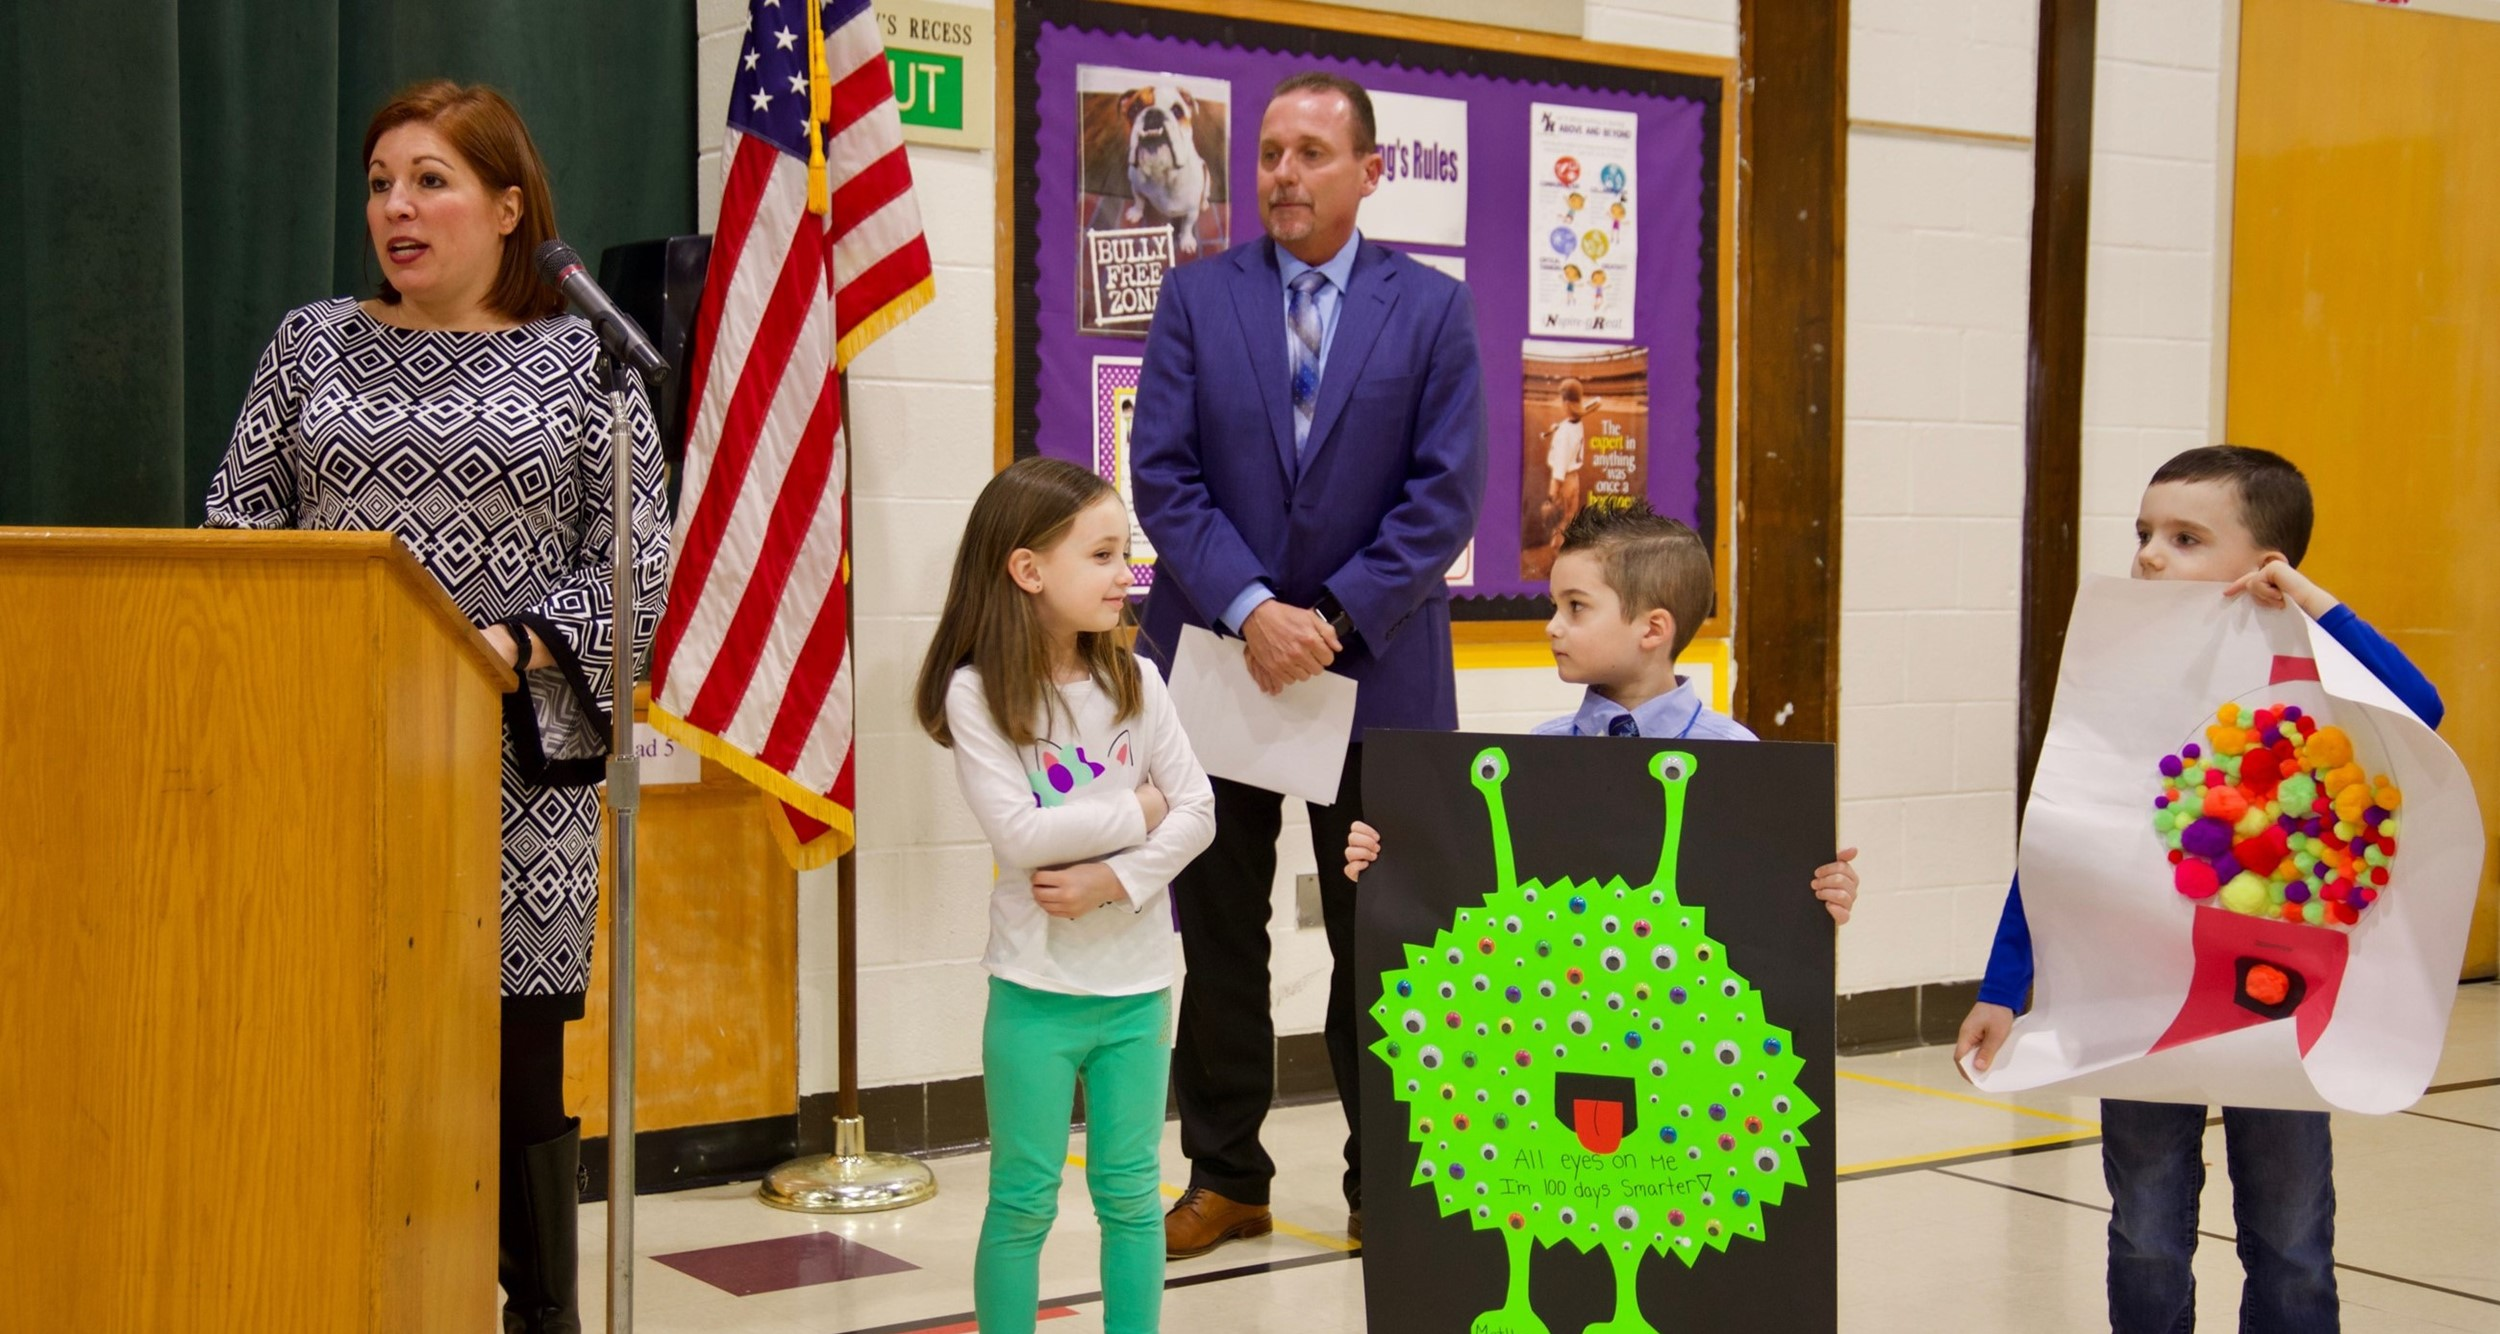 Valley Vista students at February board meeting